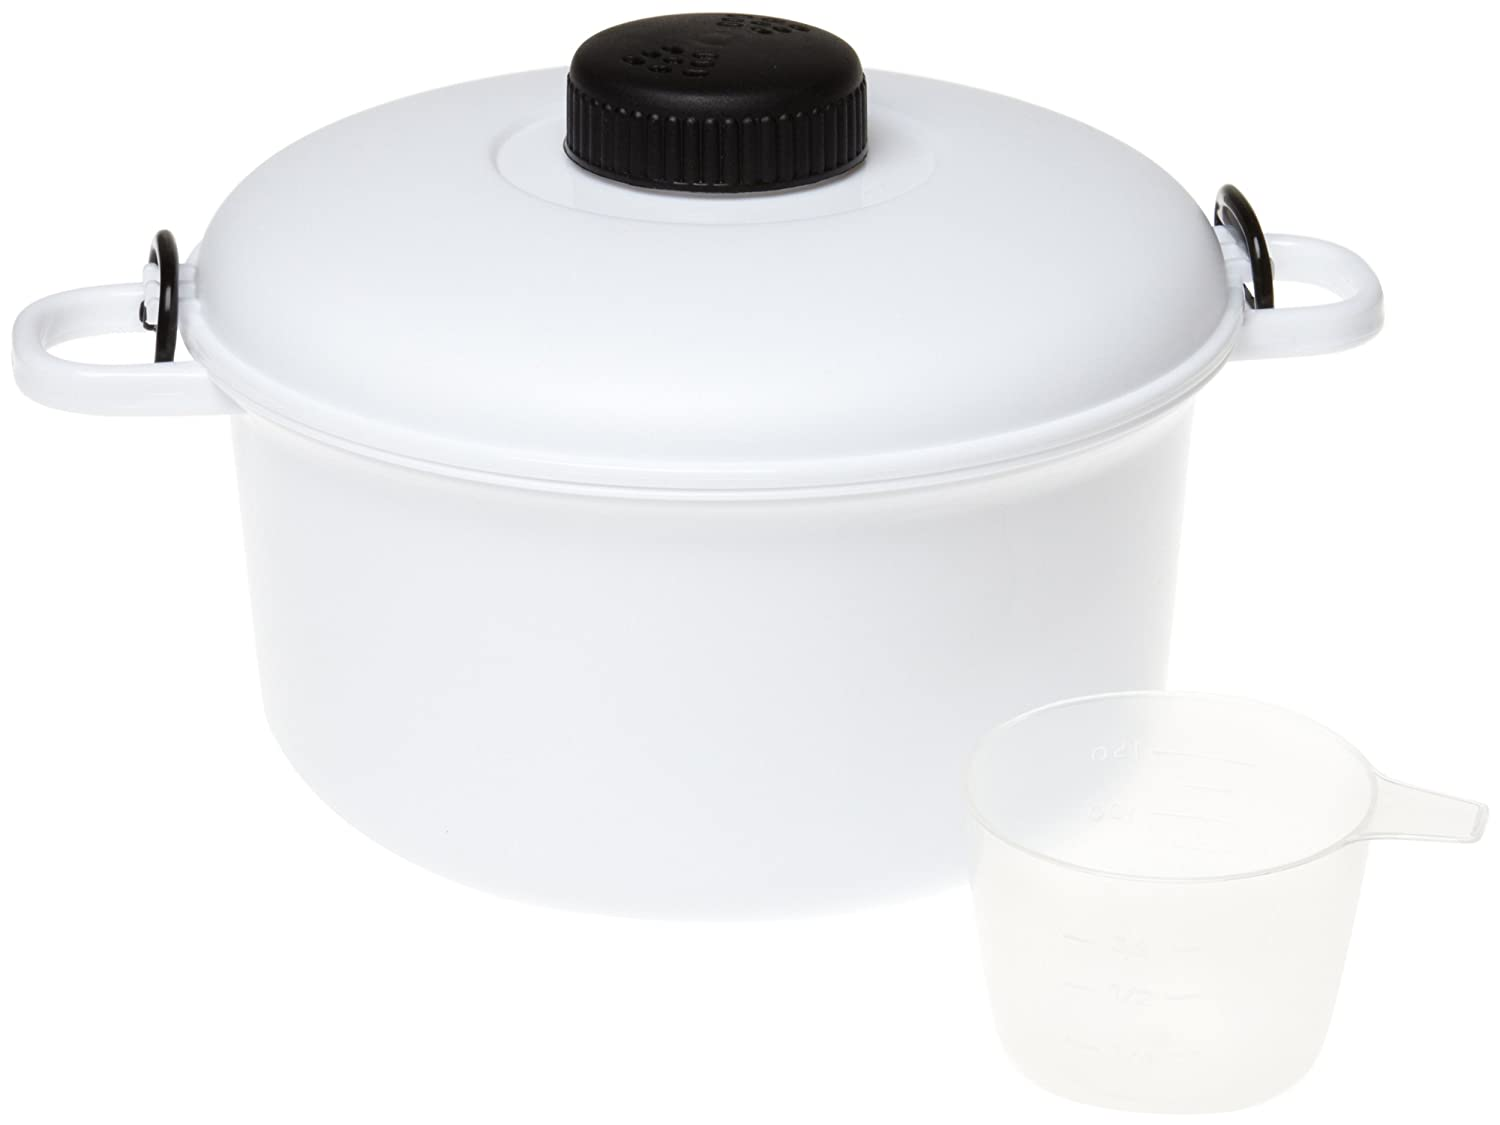 Handy Gourmet Micromaster Pressure Cooker - Cook Hearty Meals in Minutes - 2 1/2 Quart Capacity - Variety of Colors Available - Recipe Book & Measuring Book Inlcuded (White)